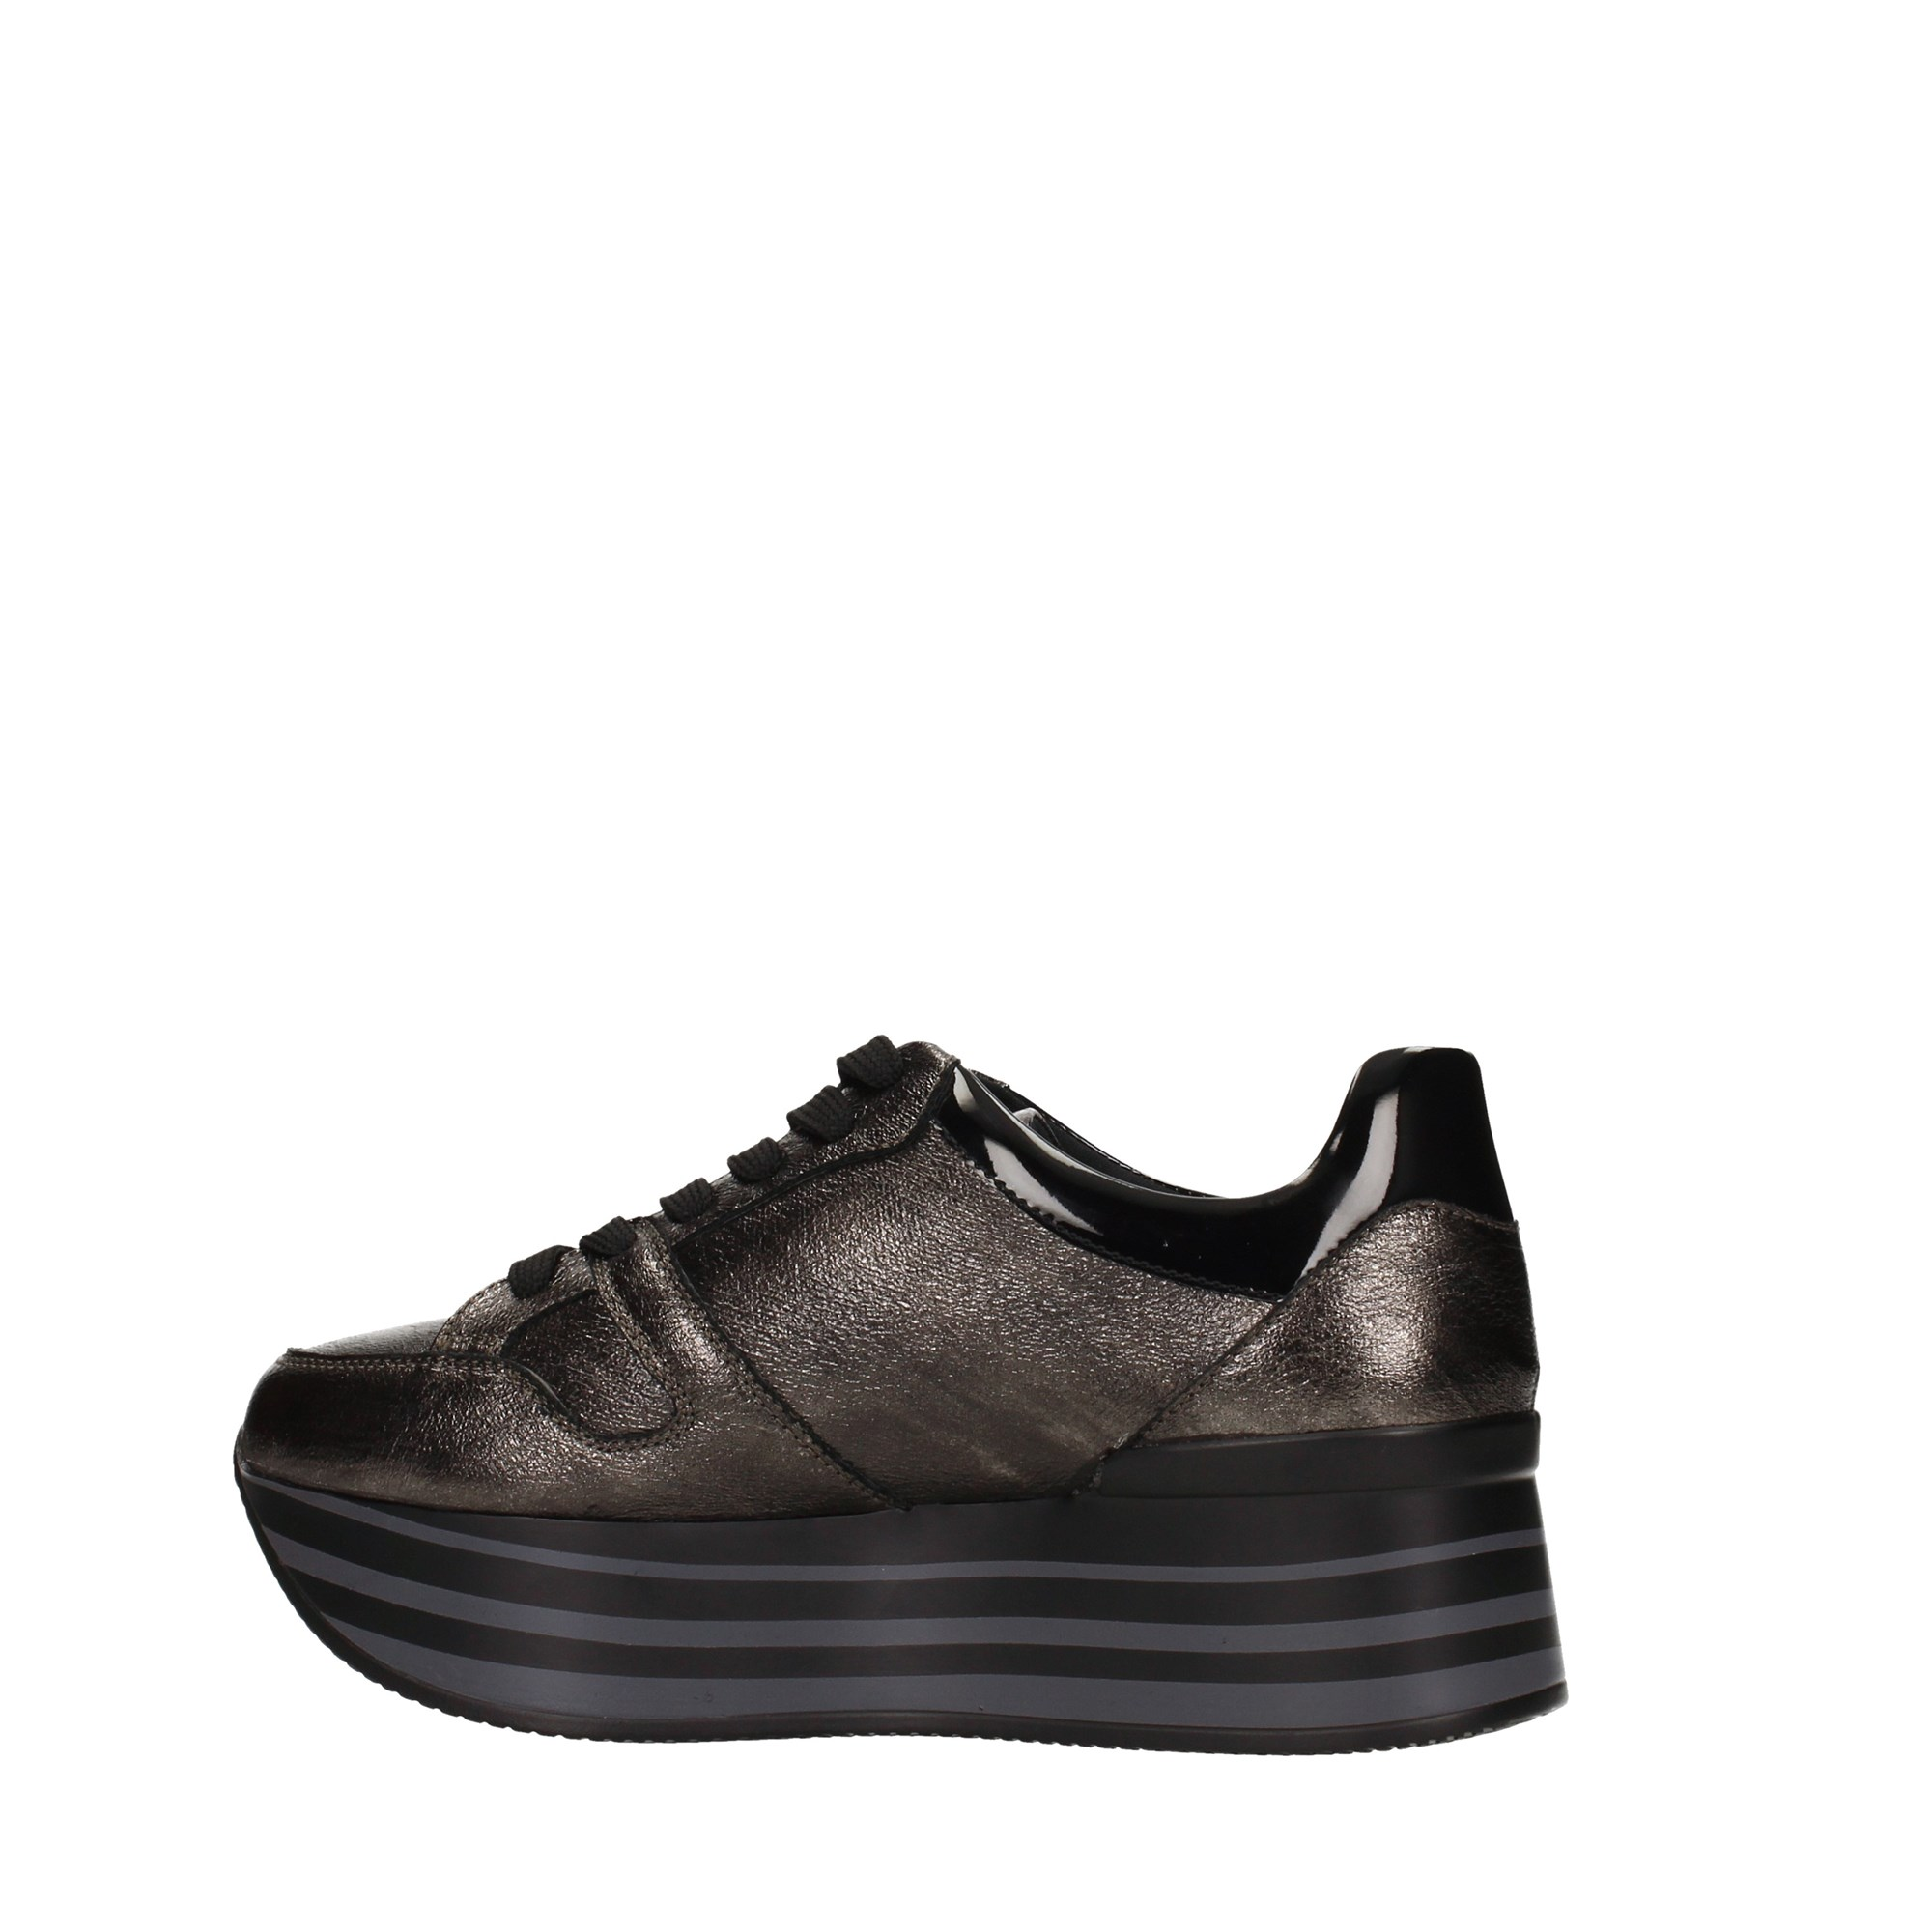 Tata Italia Shoes Woman Sneakers TA9835-1